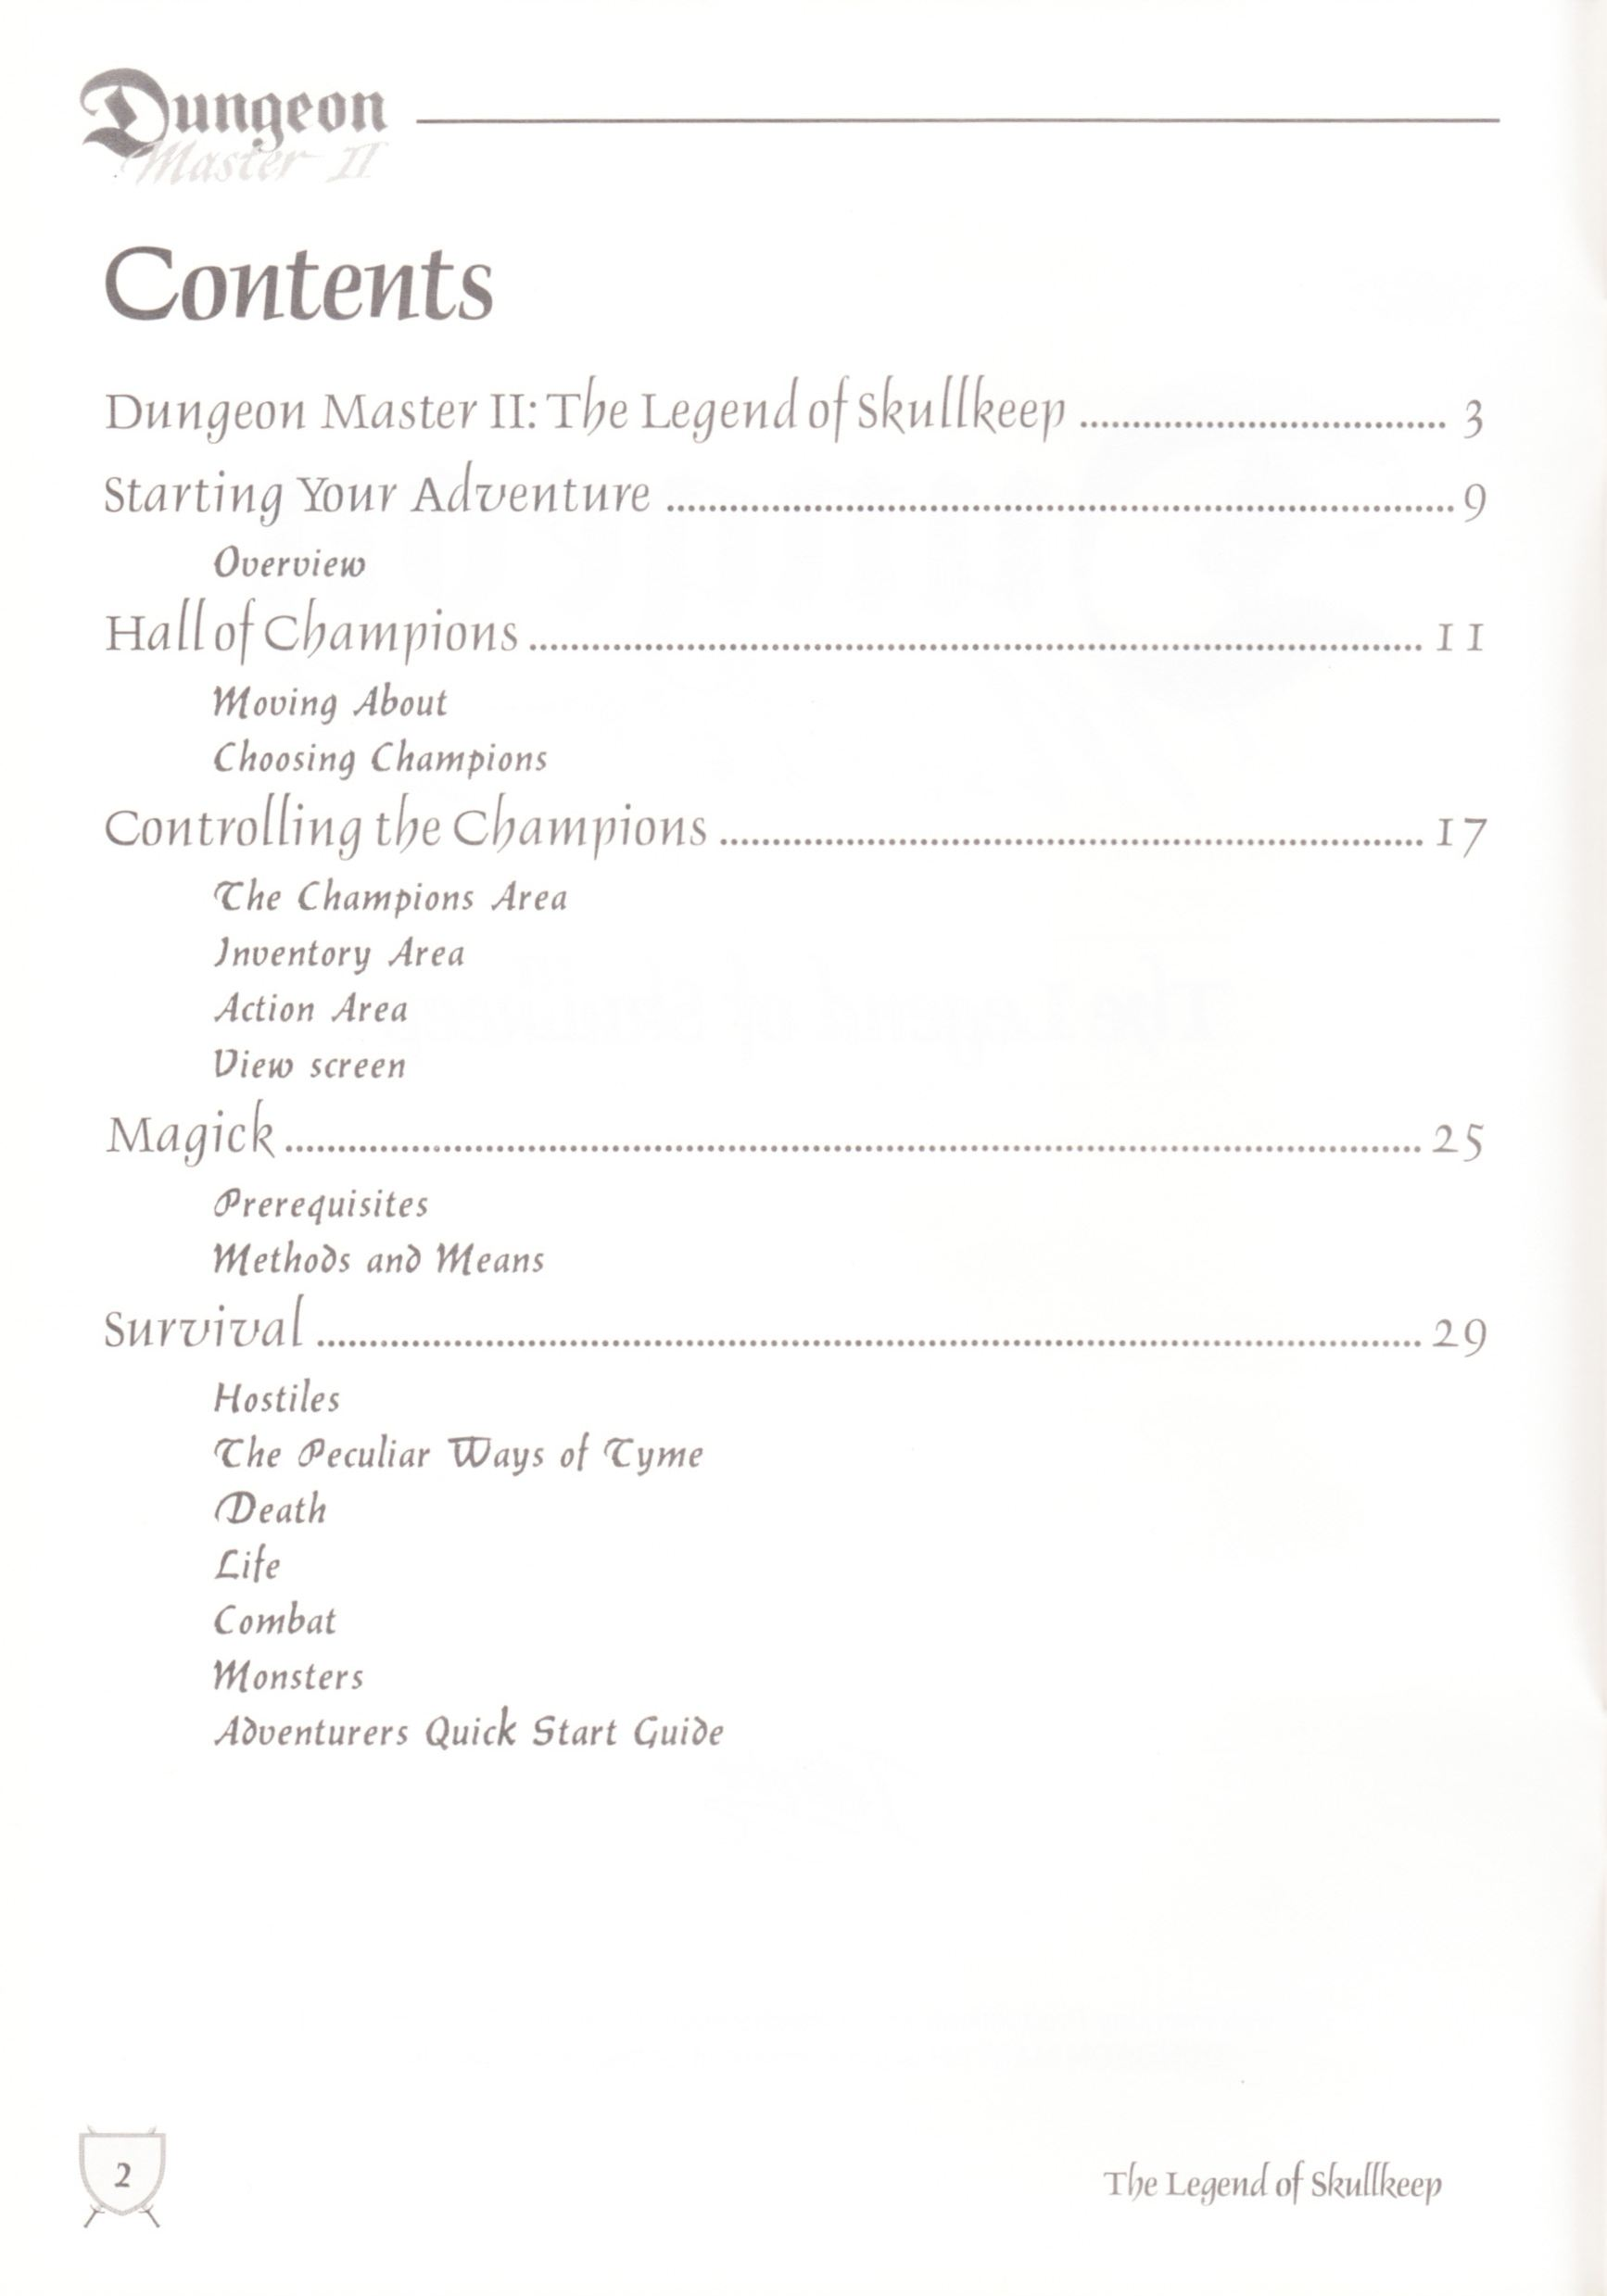 Game - Dungeon Master II - UK - Macintosh - Manual - Page 004 - Scan